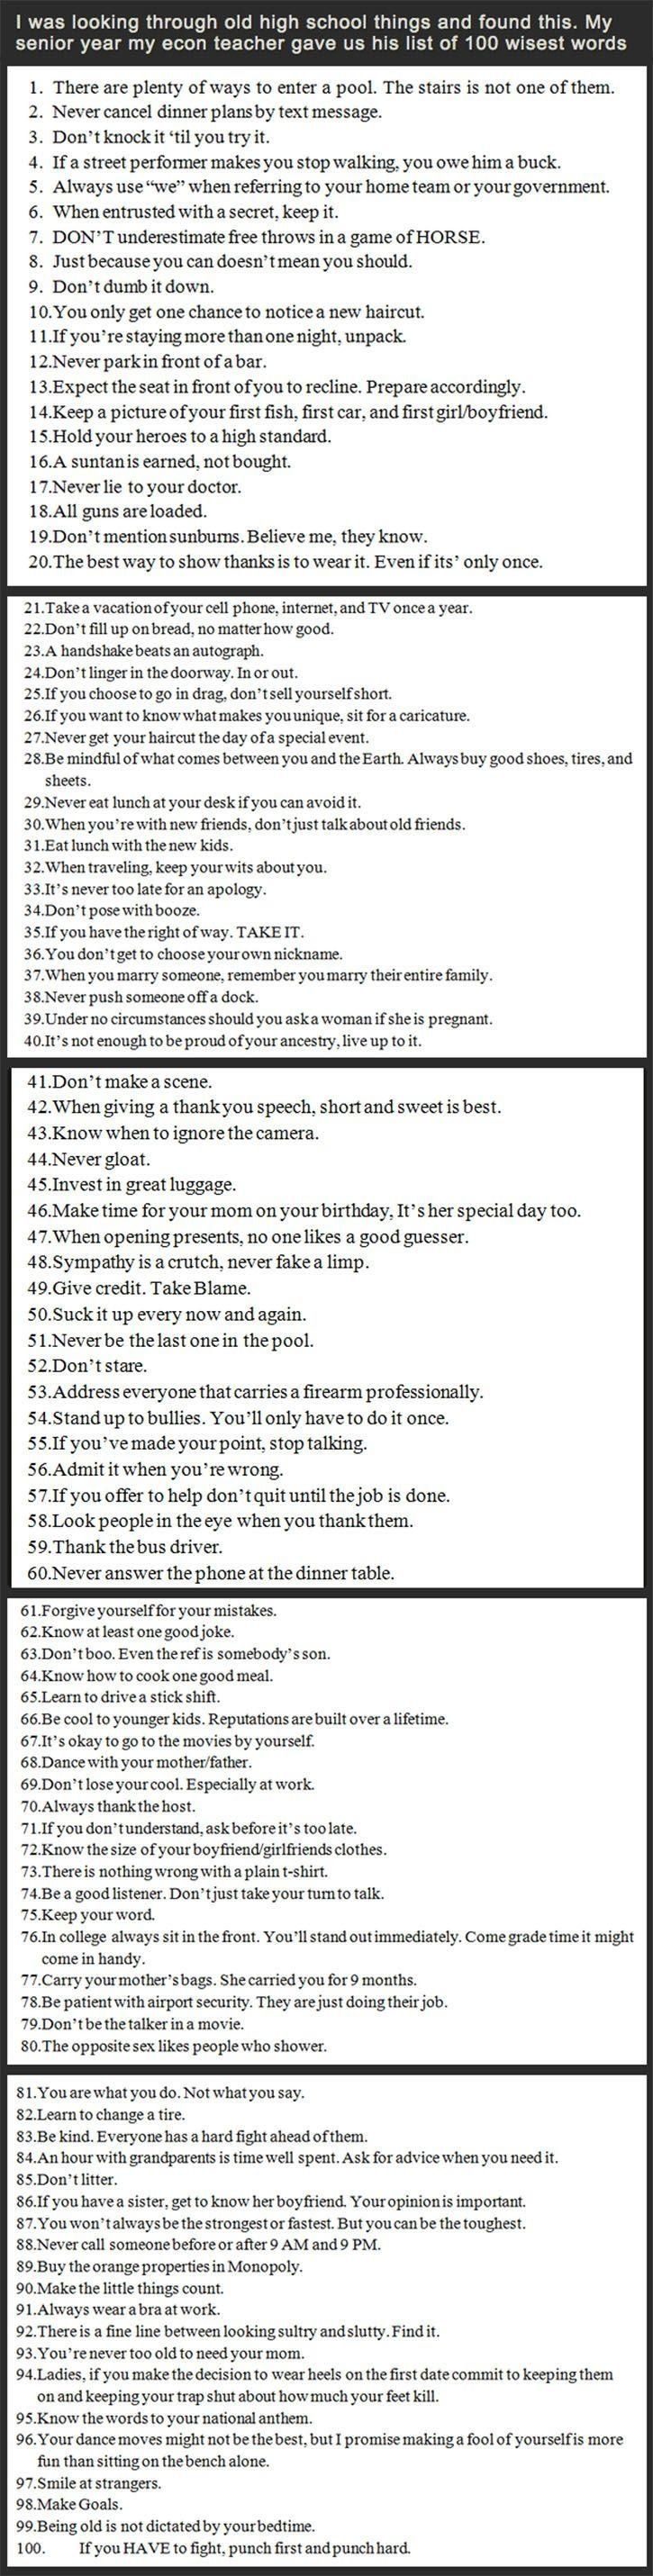 100 wise words for a teacher for students to make good choices in life.  Definitely worth a read. Puts things into perspective.